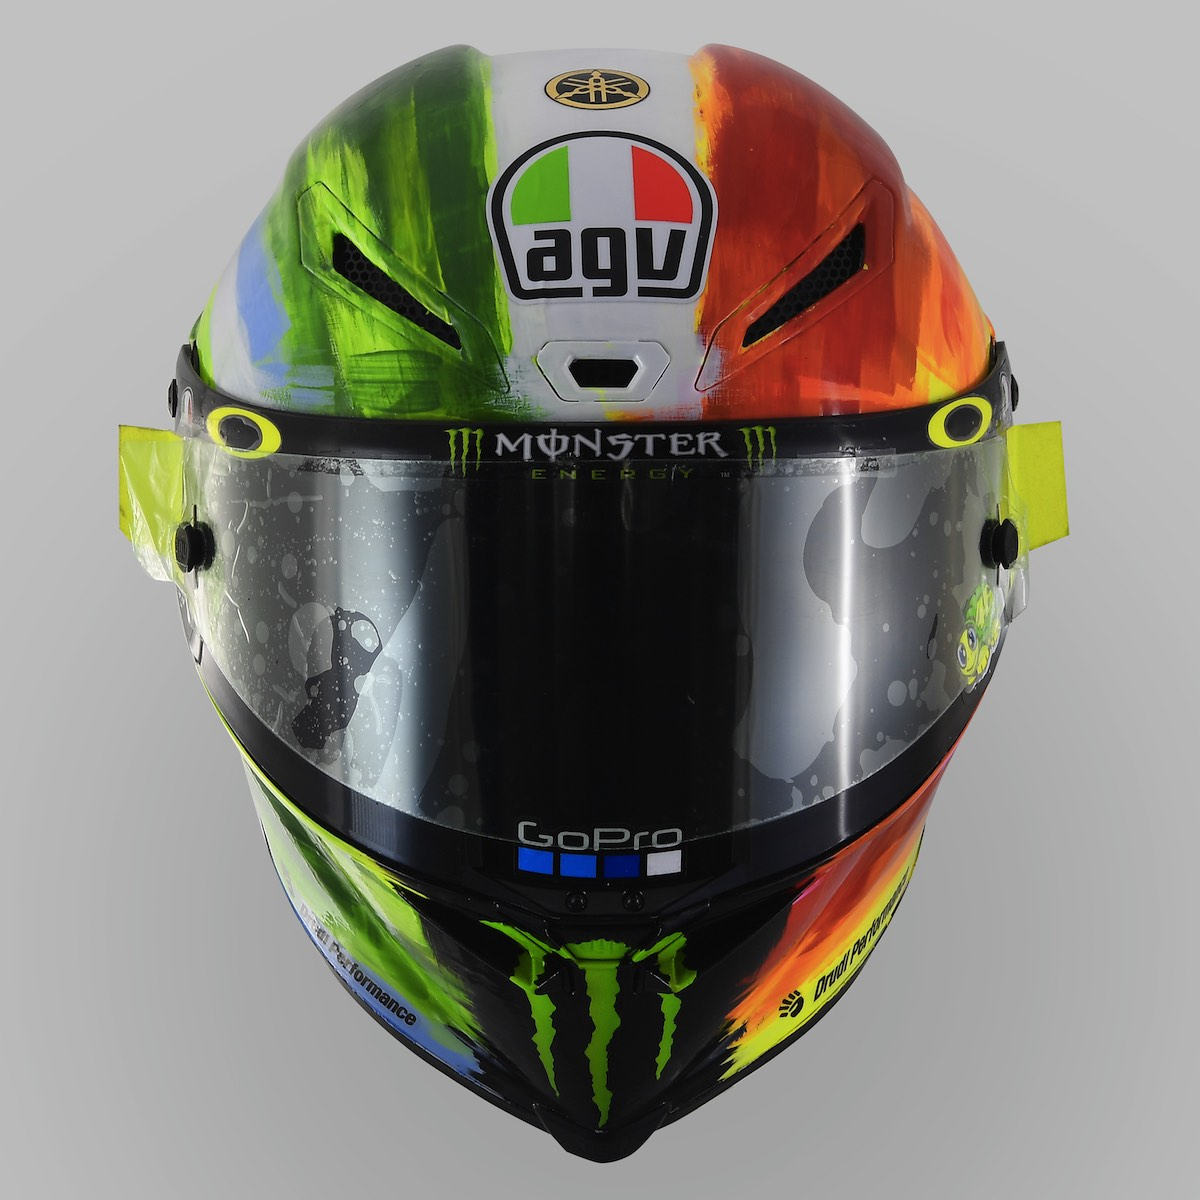 valentino rossi and agv reveal 2019 mugello pista gp r. Black Bedroom Furniture Sets. Home Design Ideas